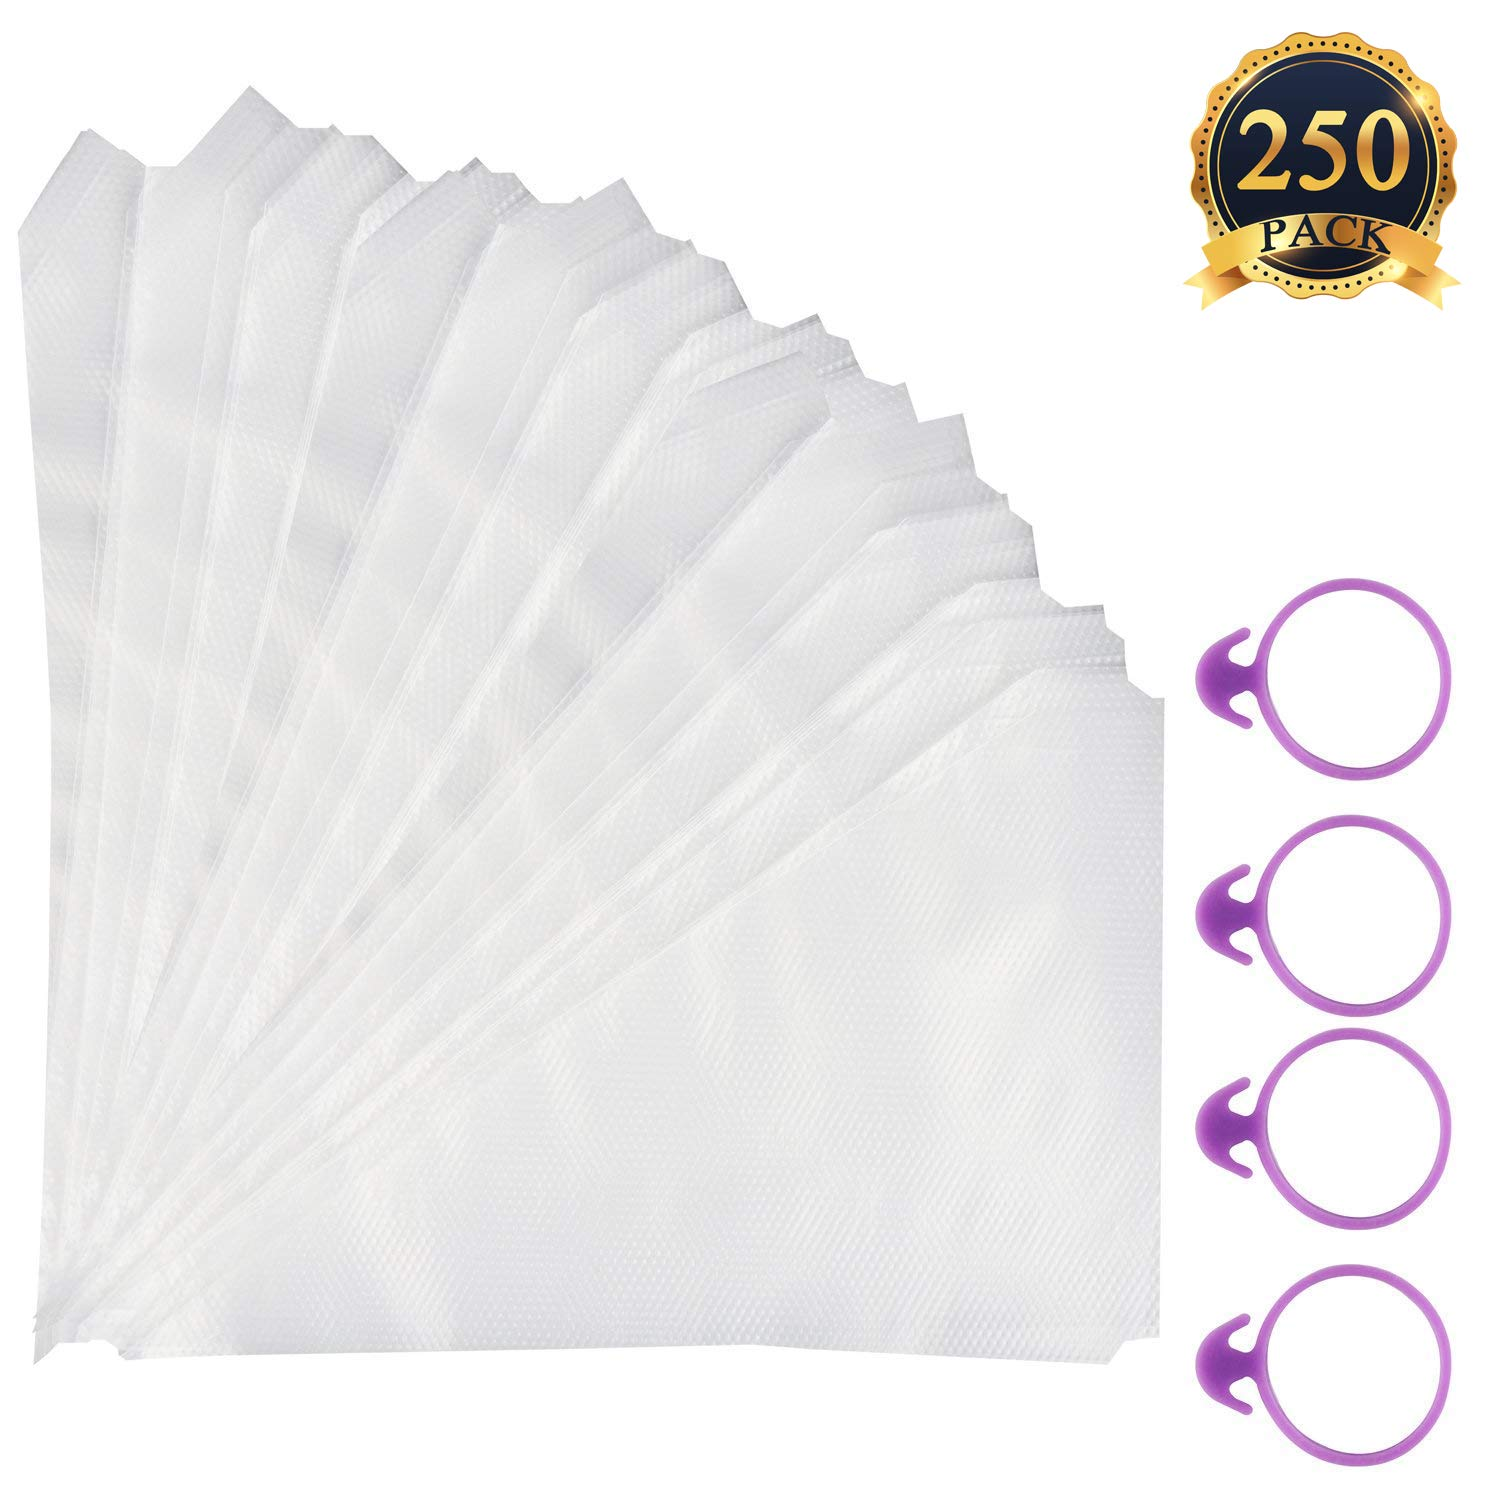 250pcs Disposable Thickened Icing Bags, Piping Bag Supplies Cake Cupcake Decorating Bags with 4 Bag ties 24 x 16cm BUBBLE